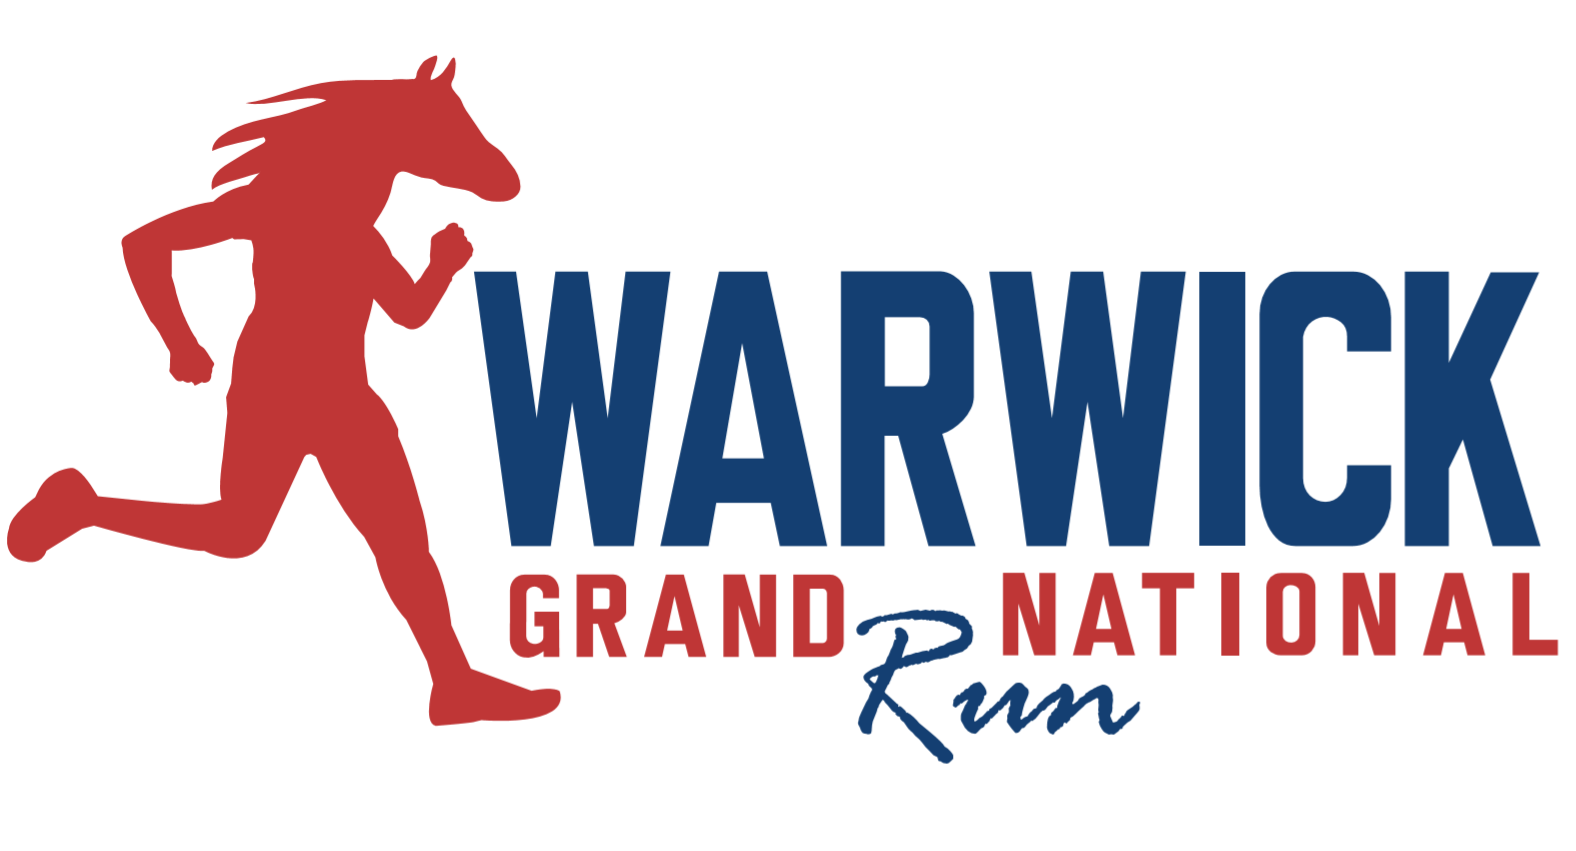 Warwick Grand National Run - cover image